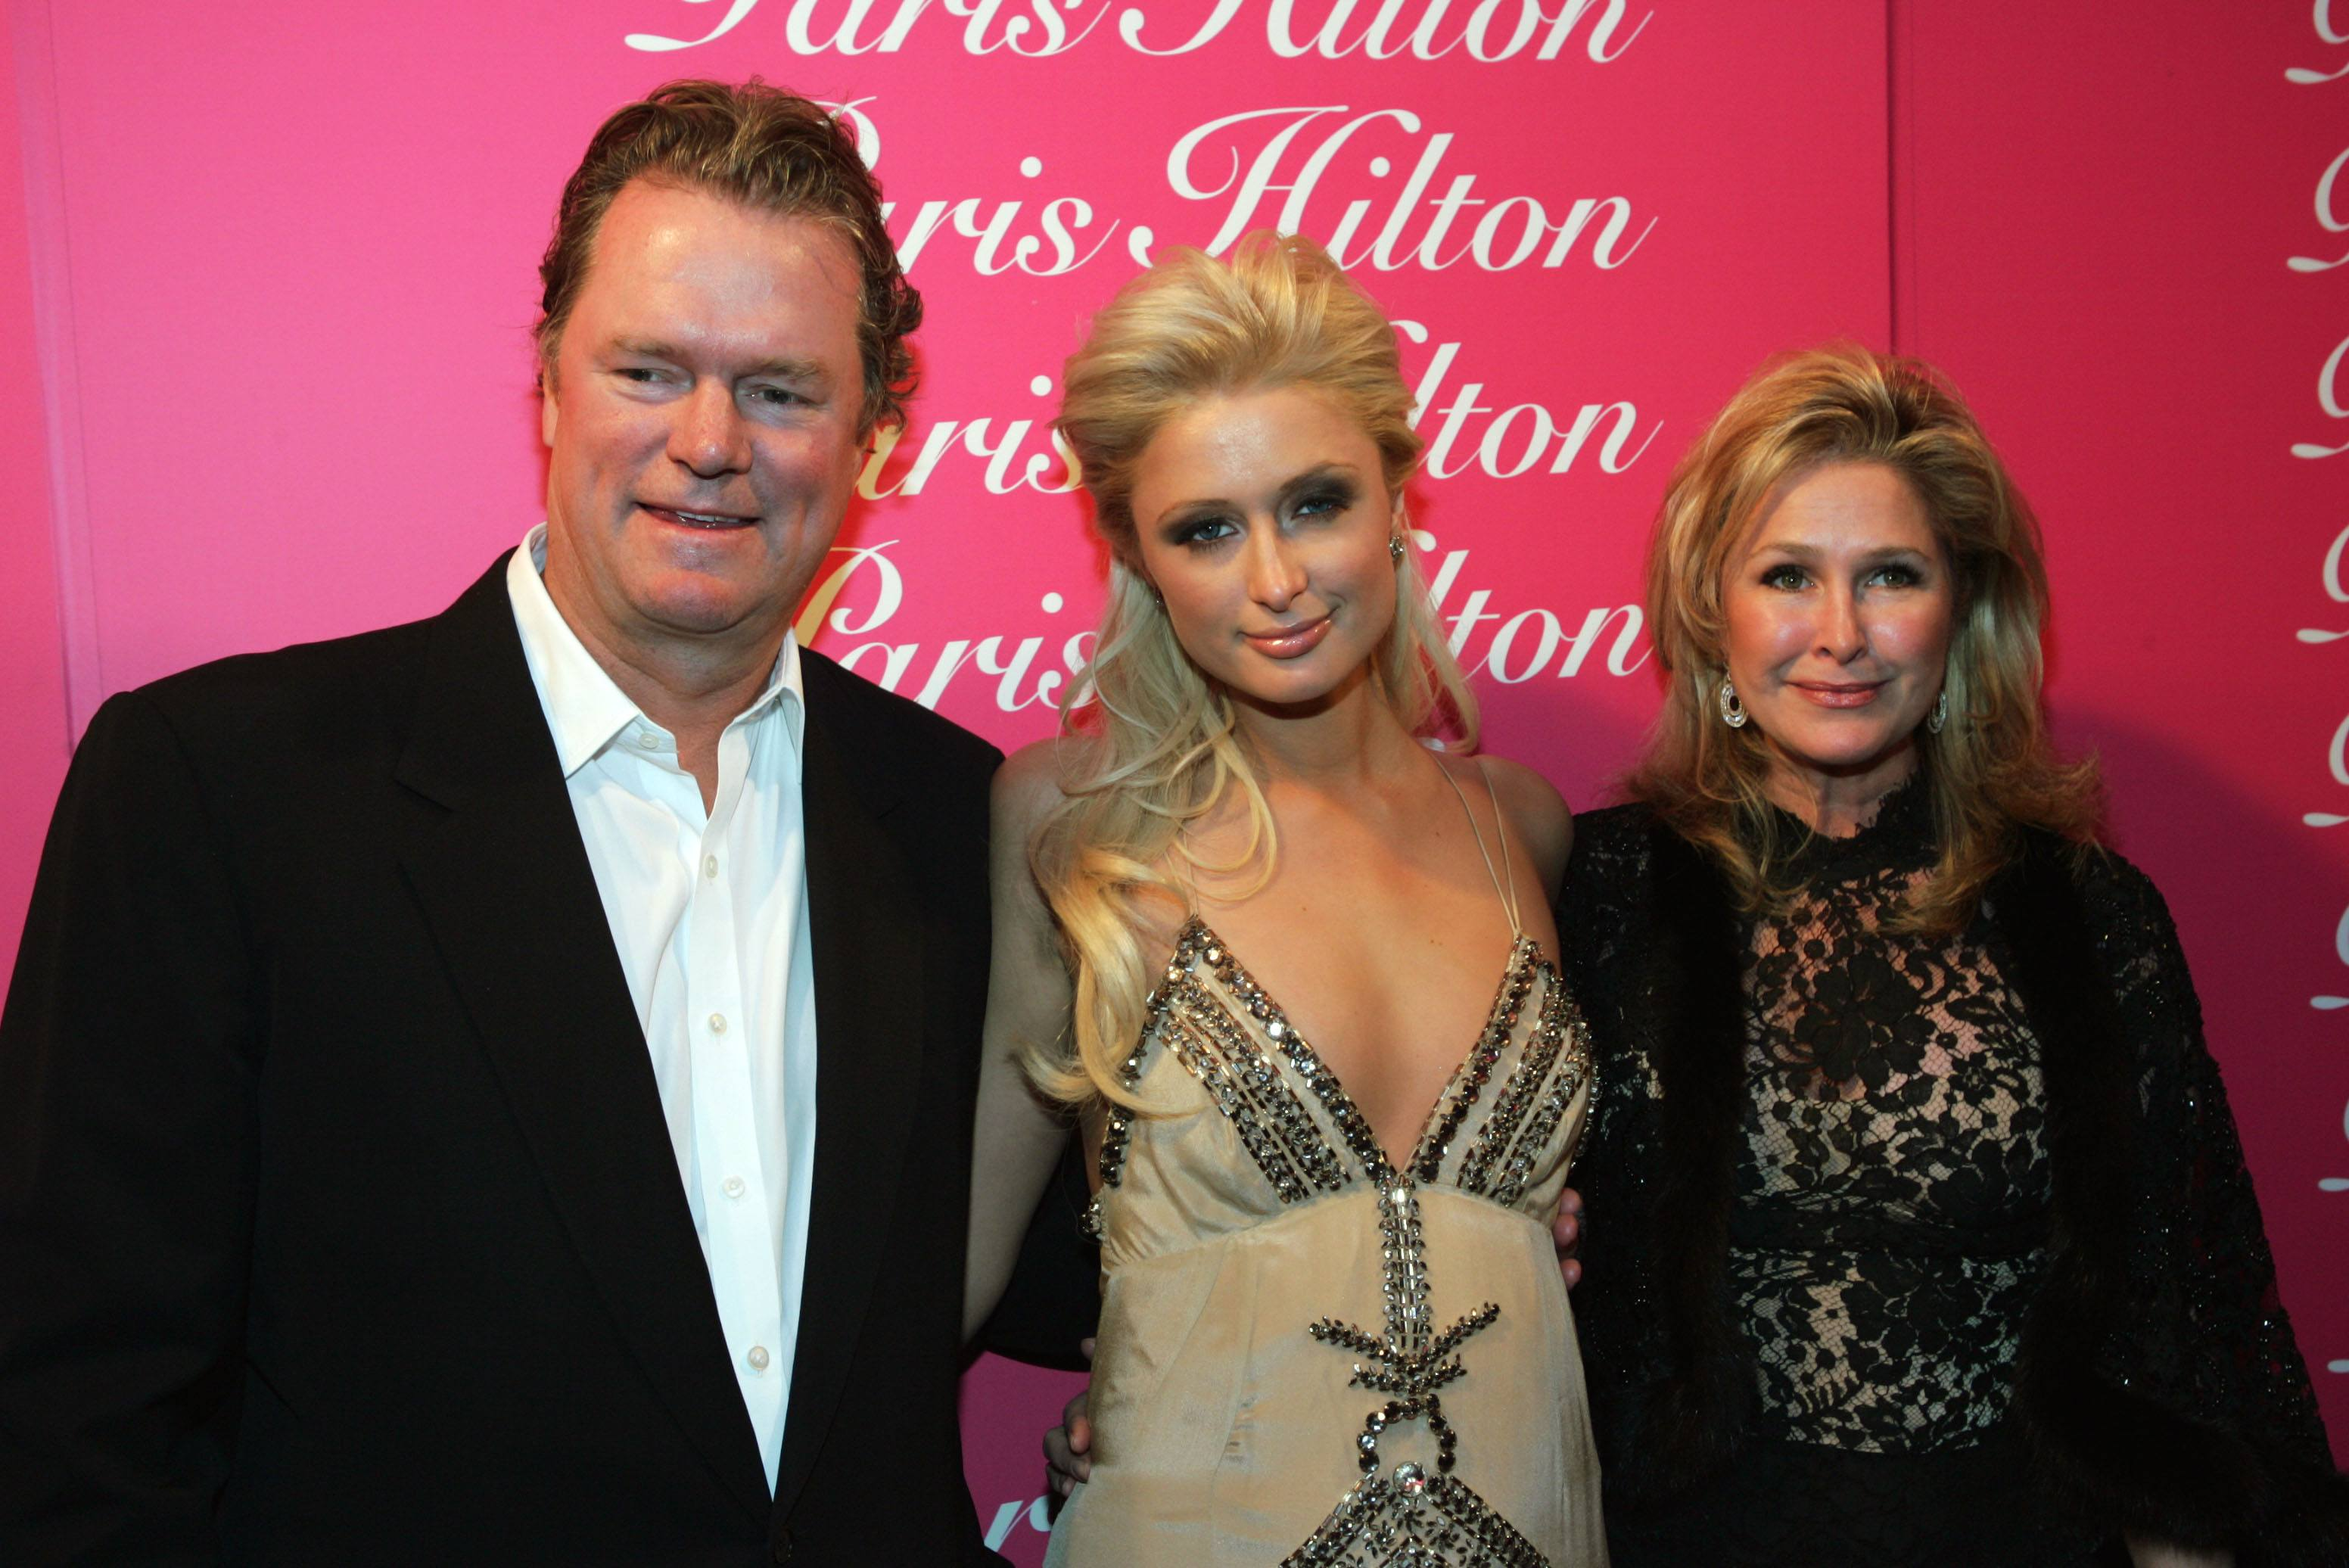 Paris Hilton with her parents Rick and Kathy